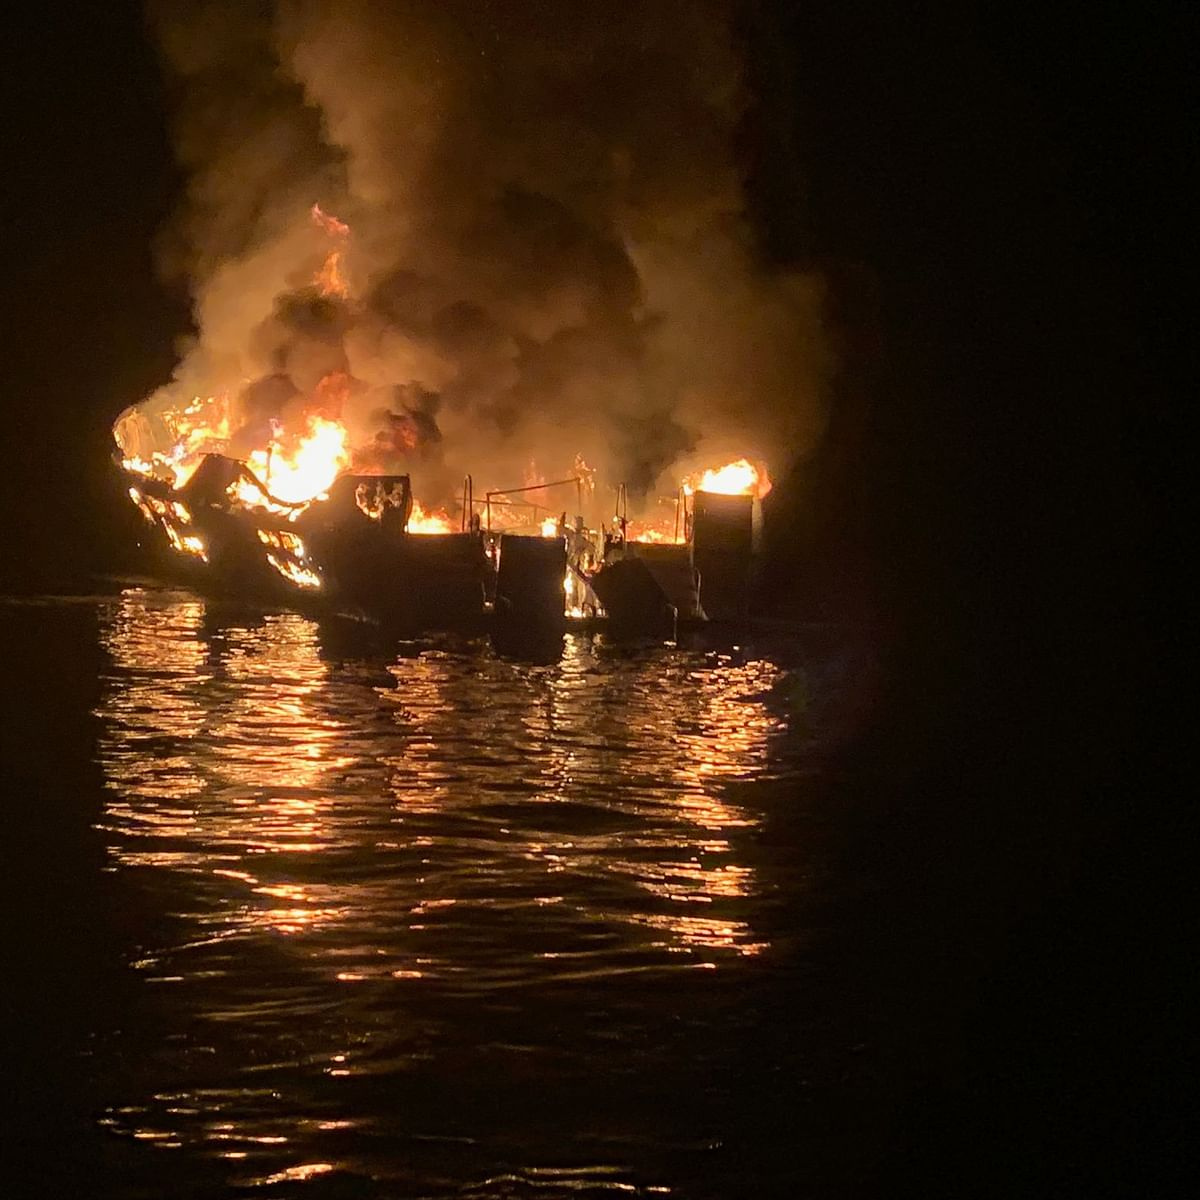 US-based Indian couple, scientist killed in California boat fire